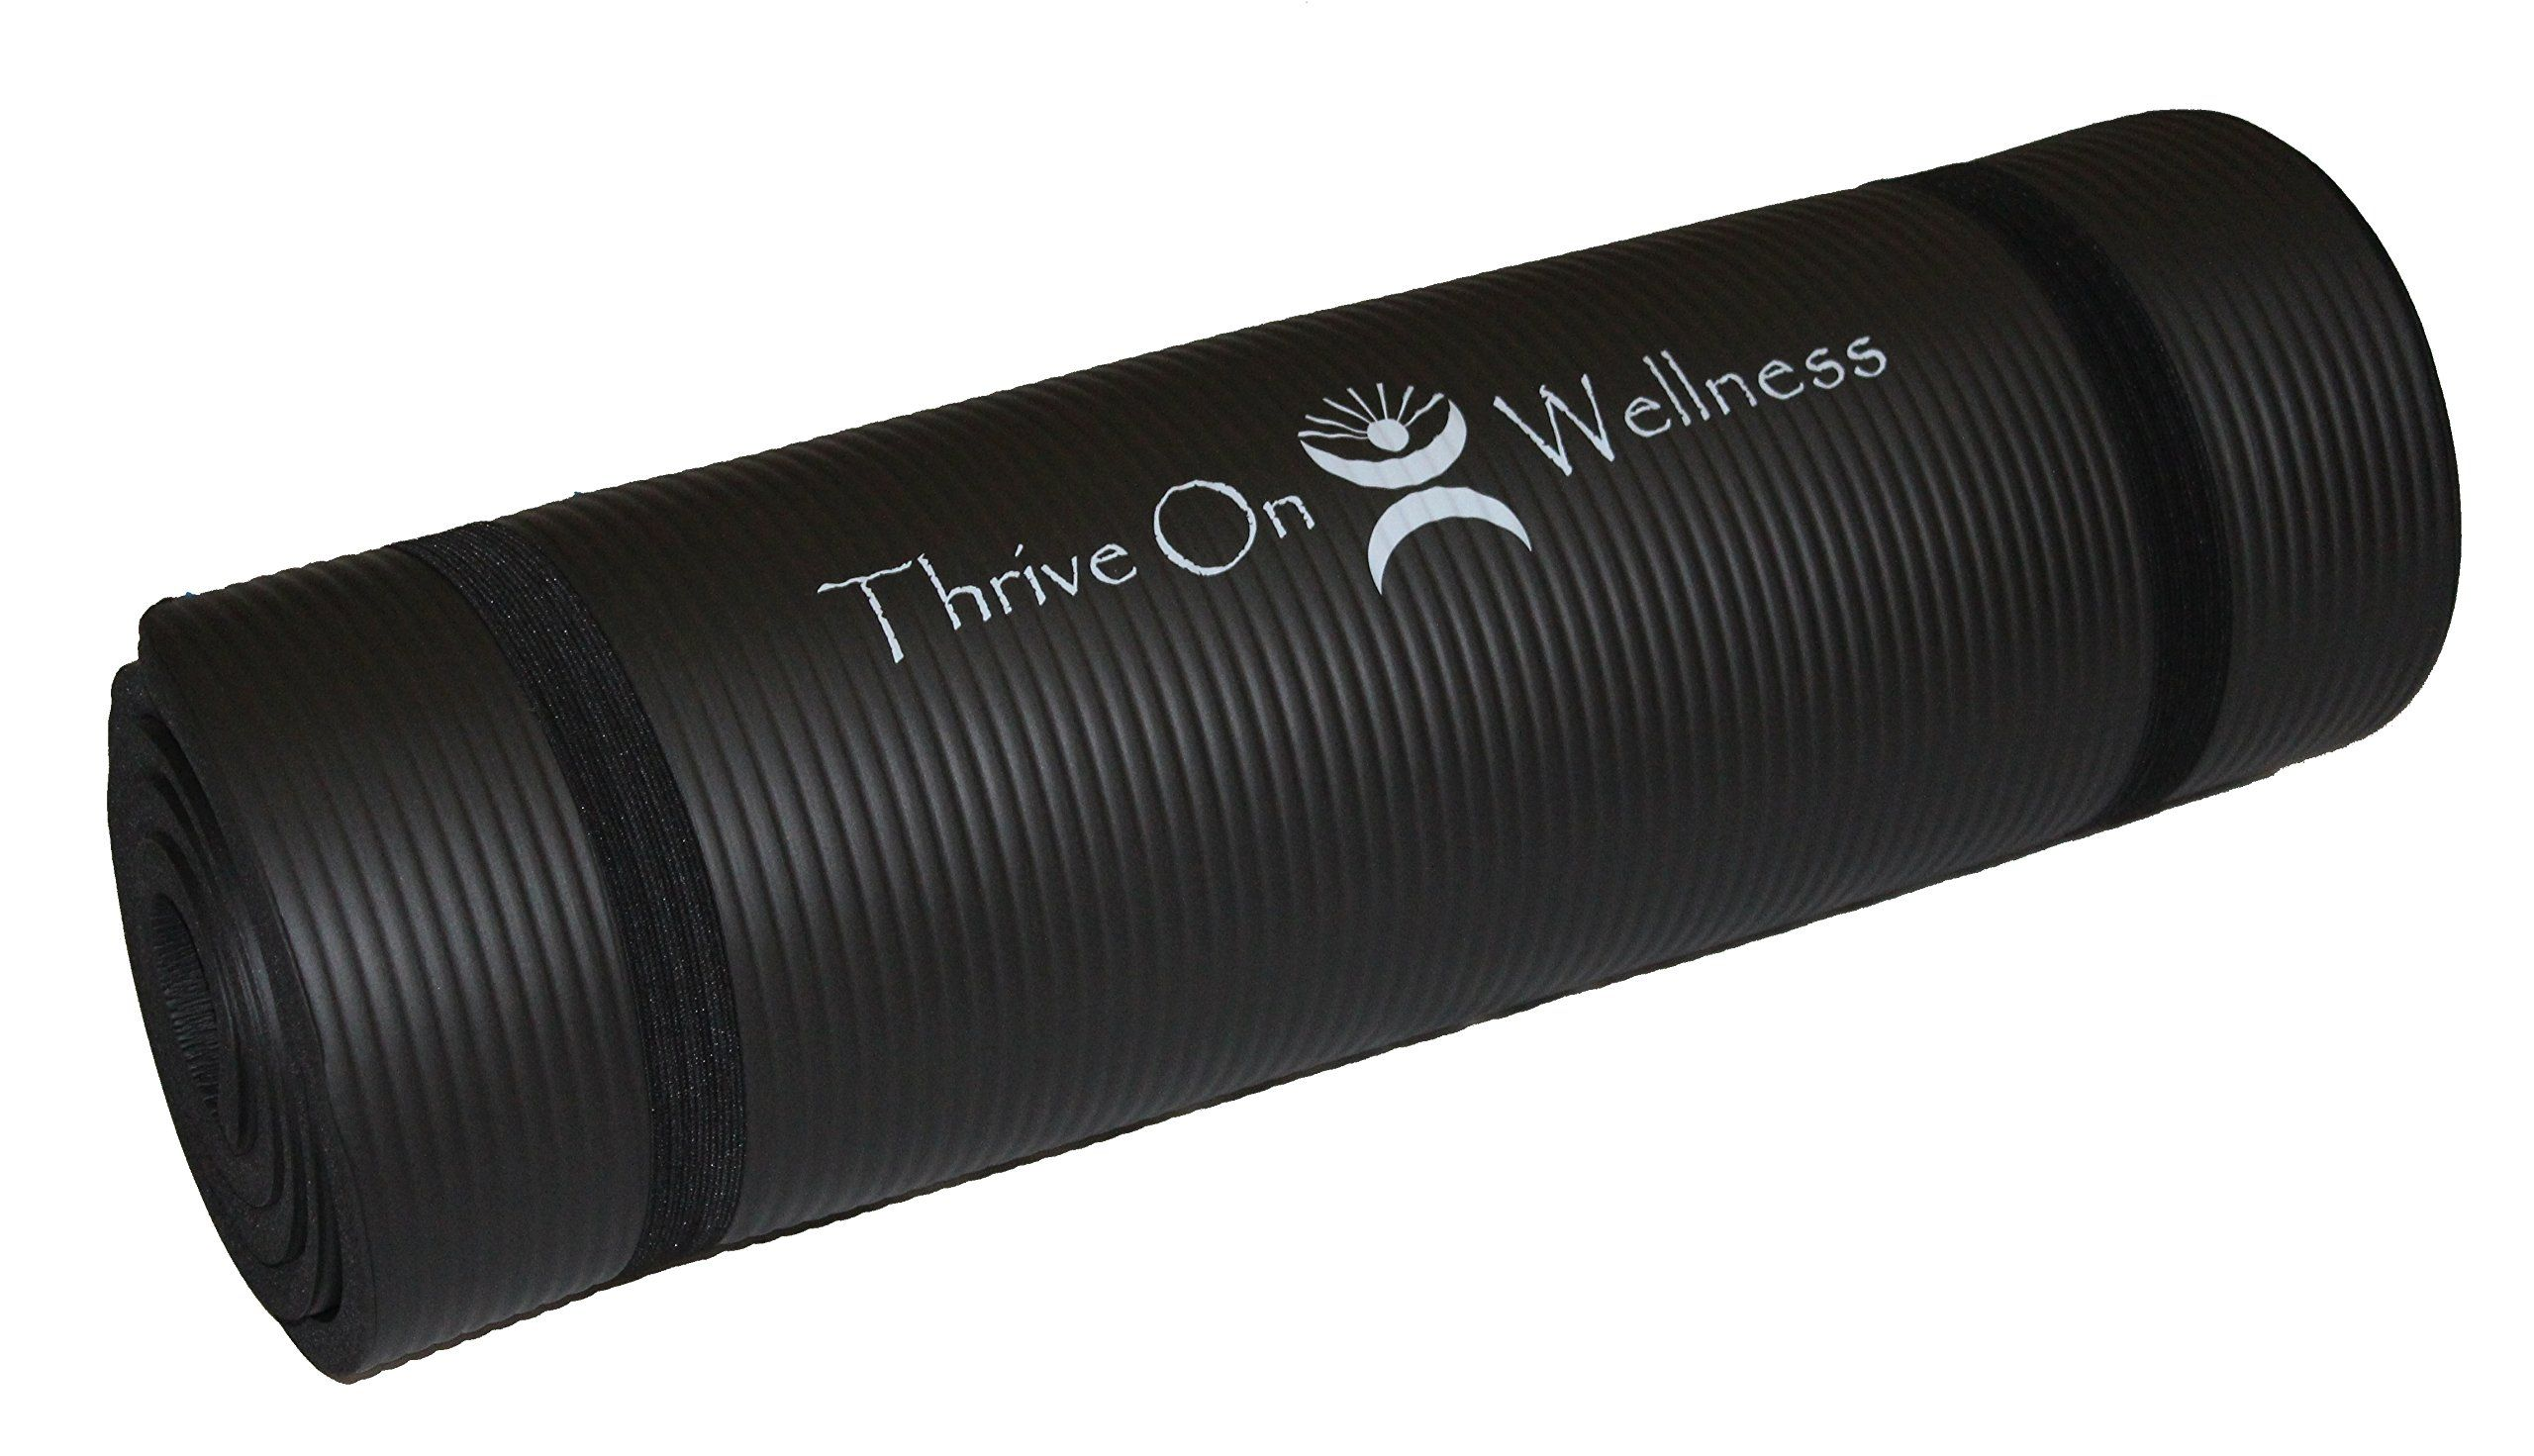 Extra Thick And Extra Long Non Toxic Yoga Mat Thick Yoga Mats Yoga Mats Best Mat Exercises